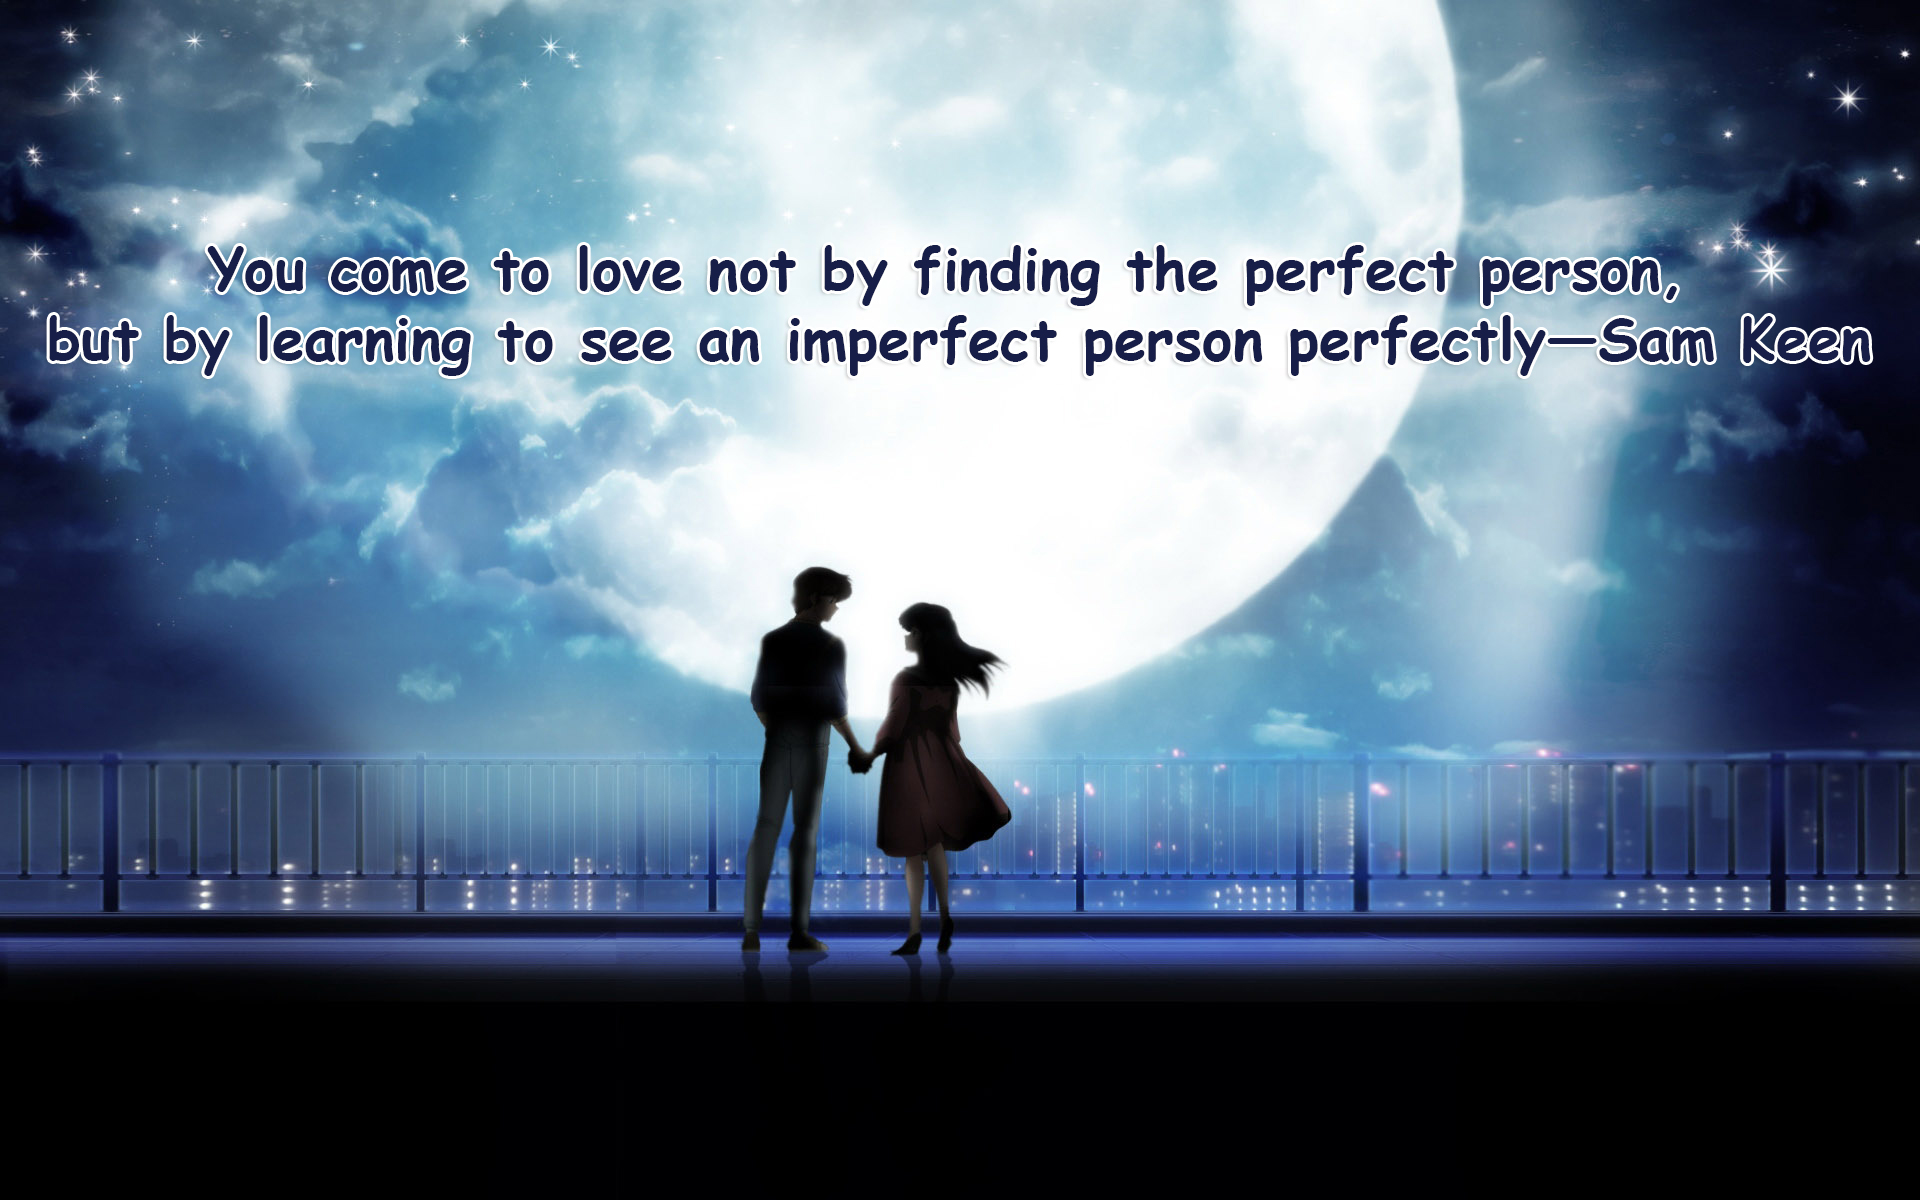 20+ Love Quotes Wallpaper -Romantic couple Images with Quotes